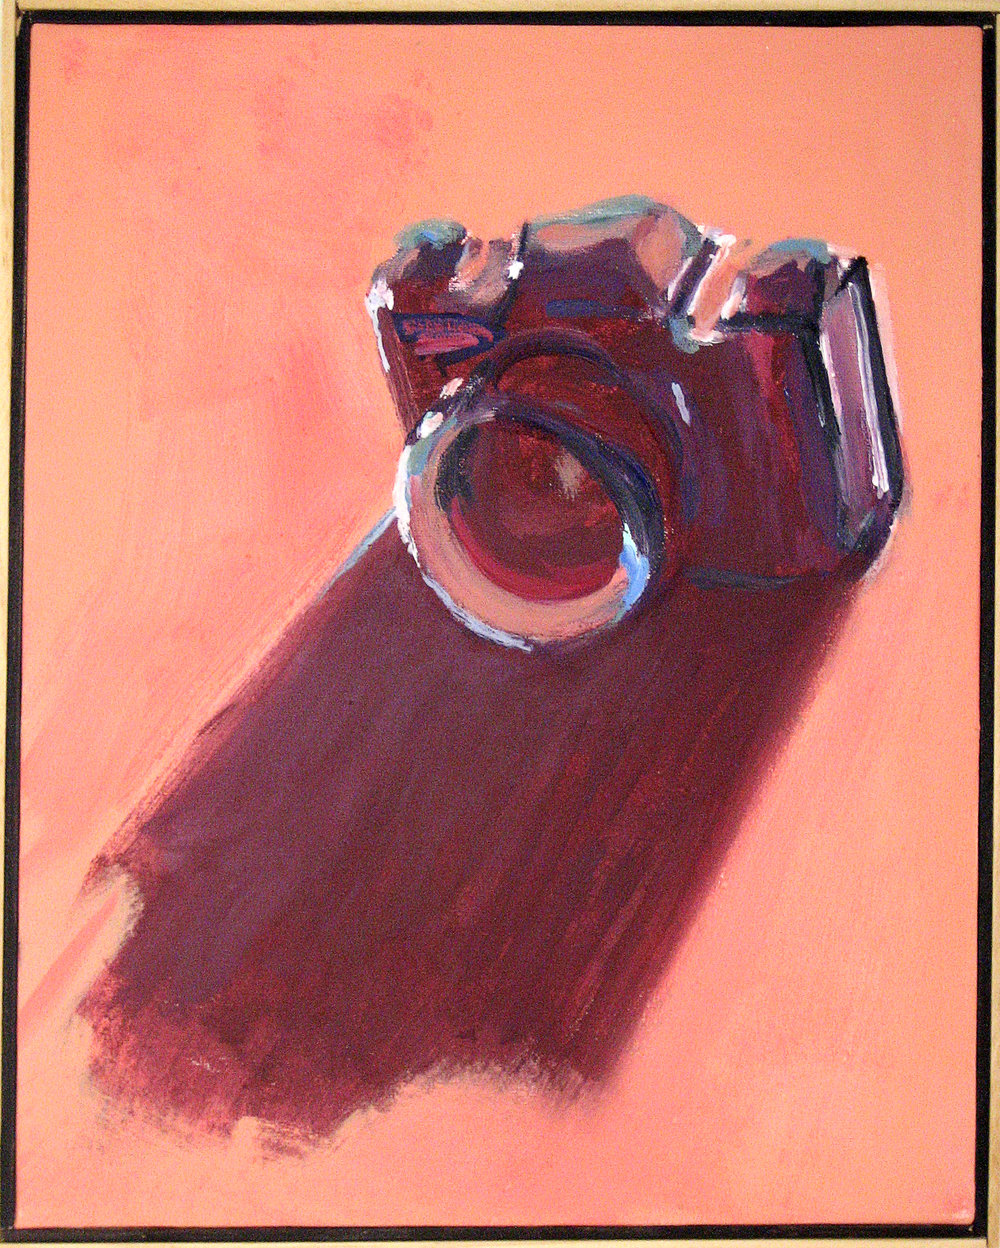 "Peter Charlap (BIO), After Image, 2004, oil on canvas, 21"" x 17"""